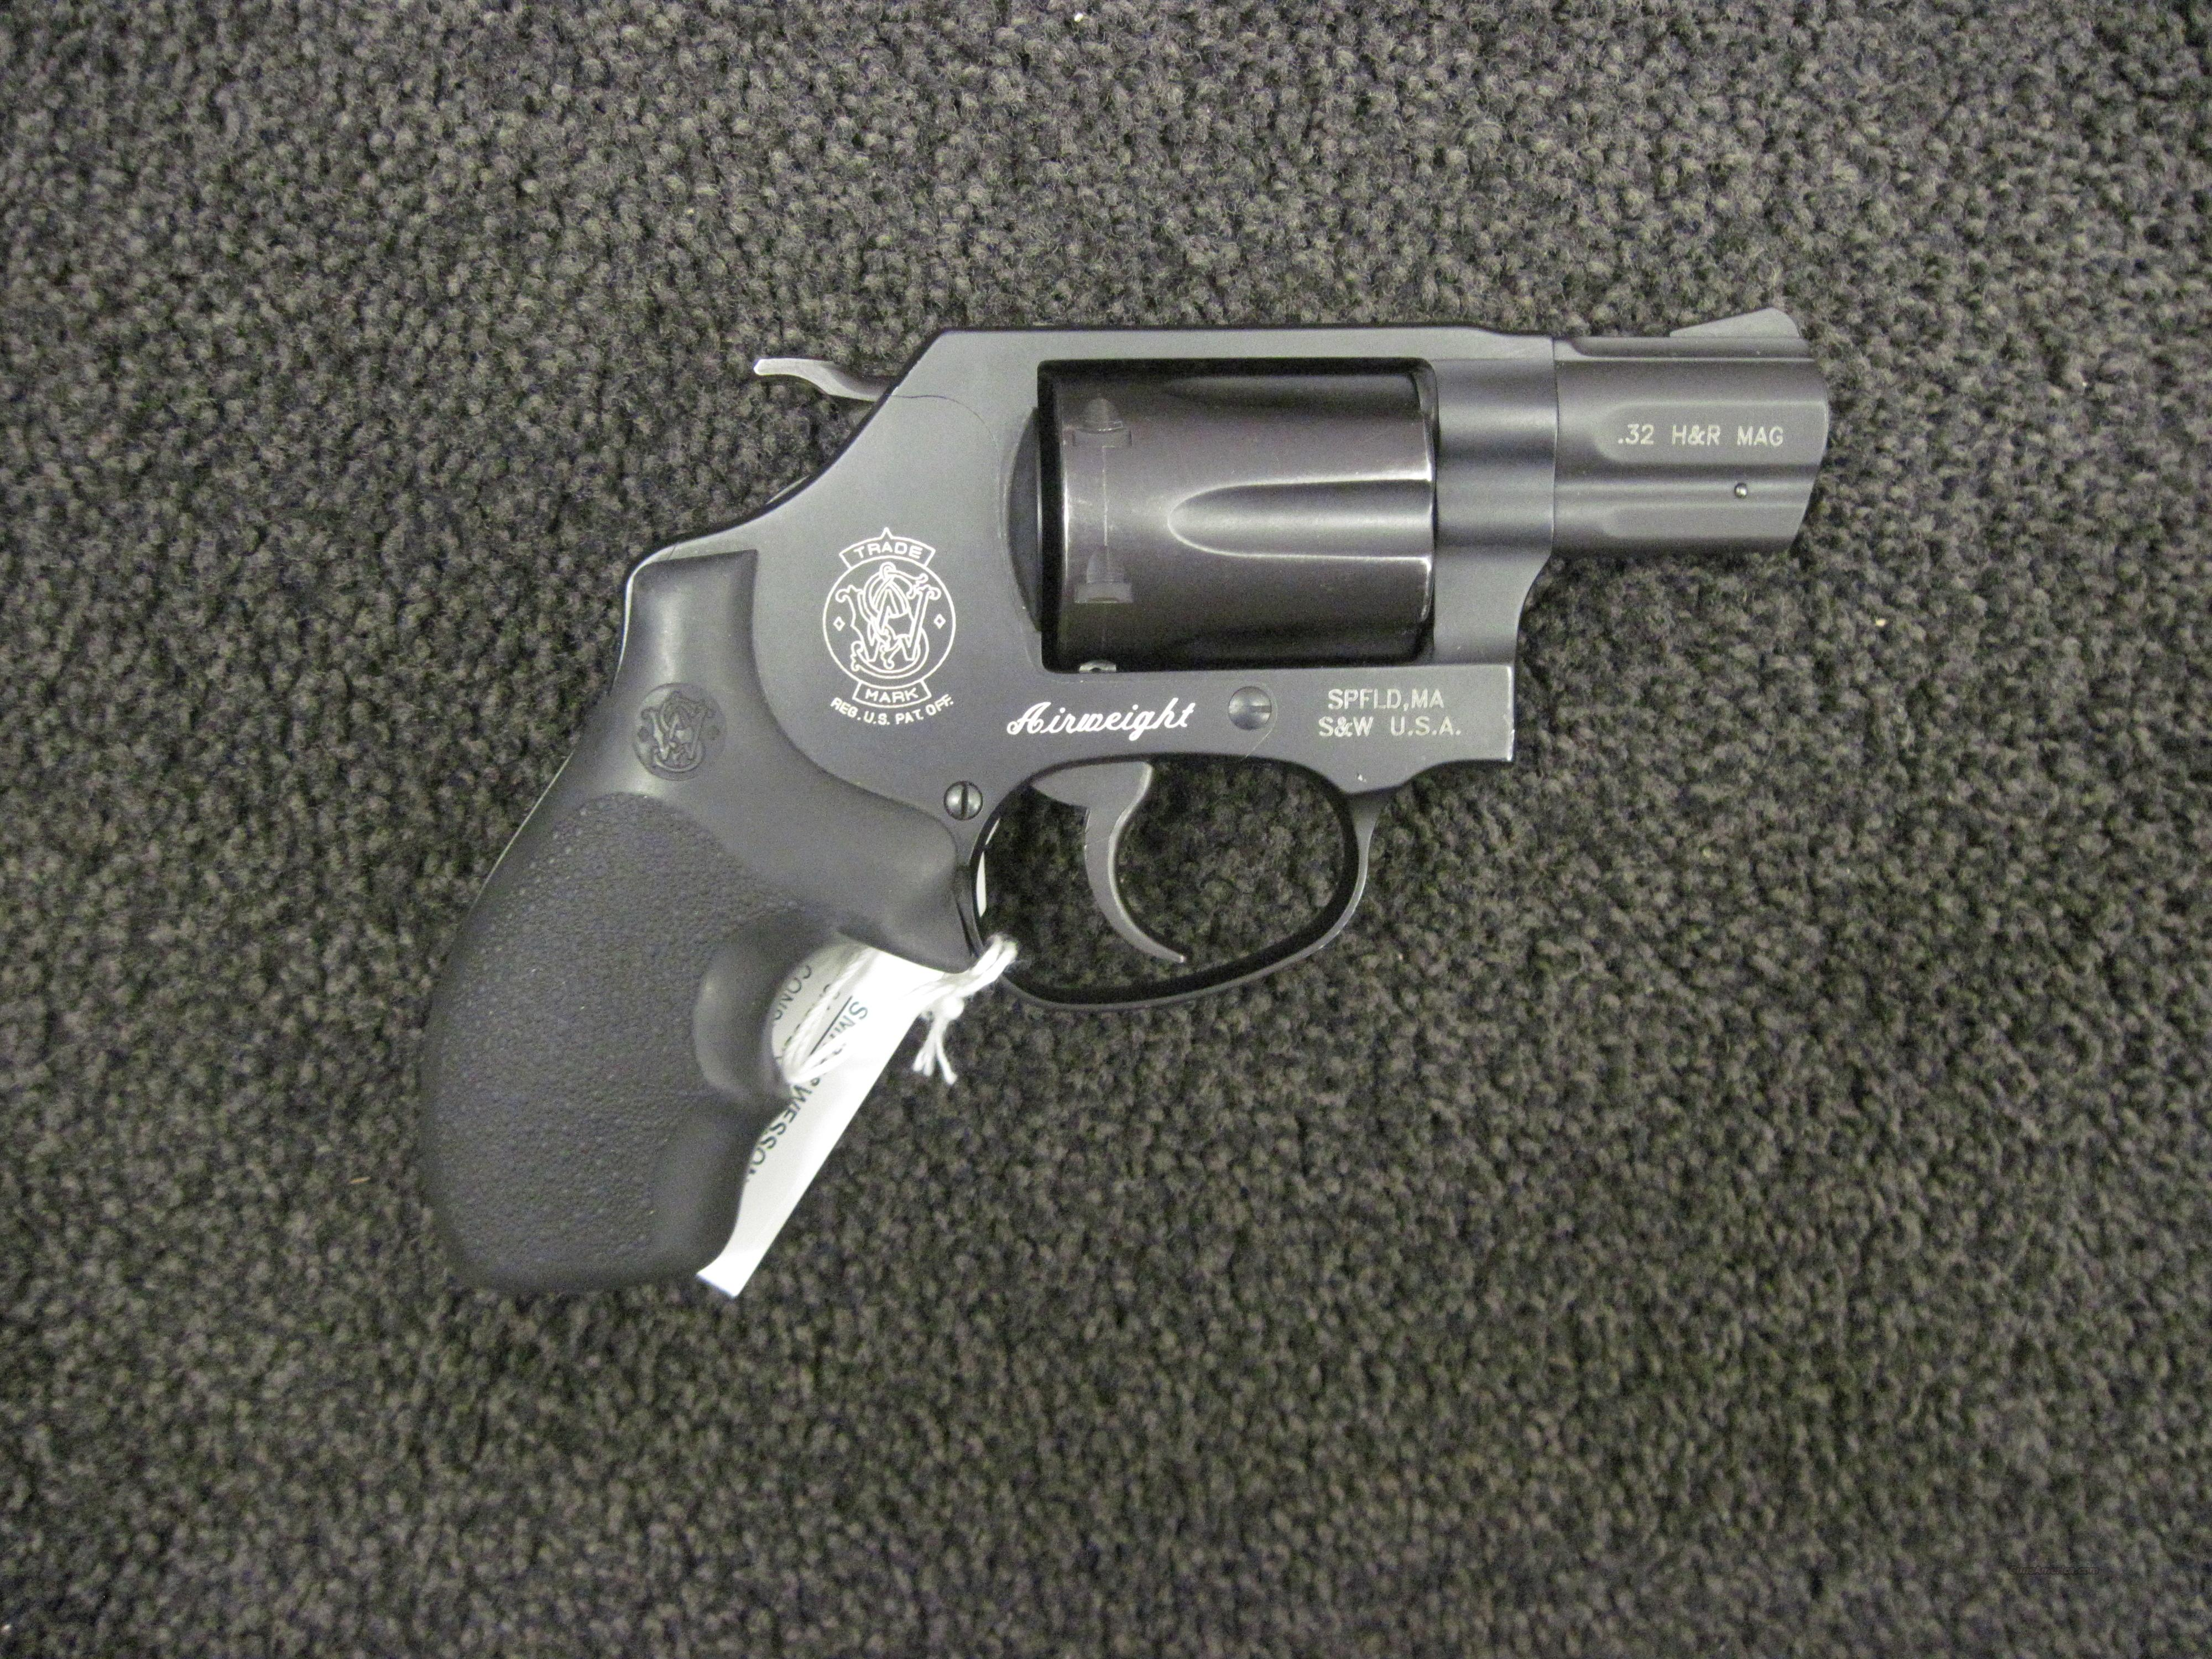 Smith & Wesson Airweight 32 H&R Mag  Guns > Pistols > Smith & Wesson Revolvers > Pocket Pistols